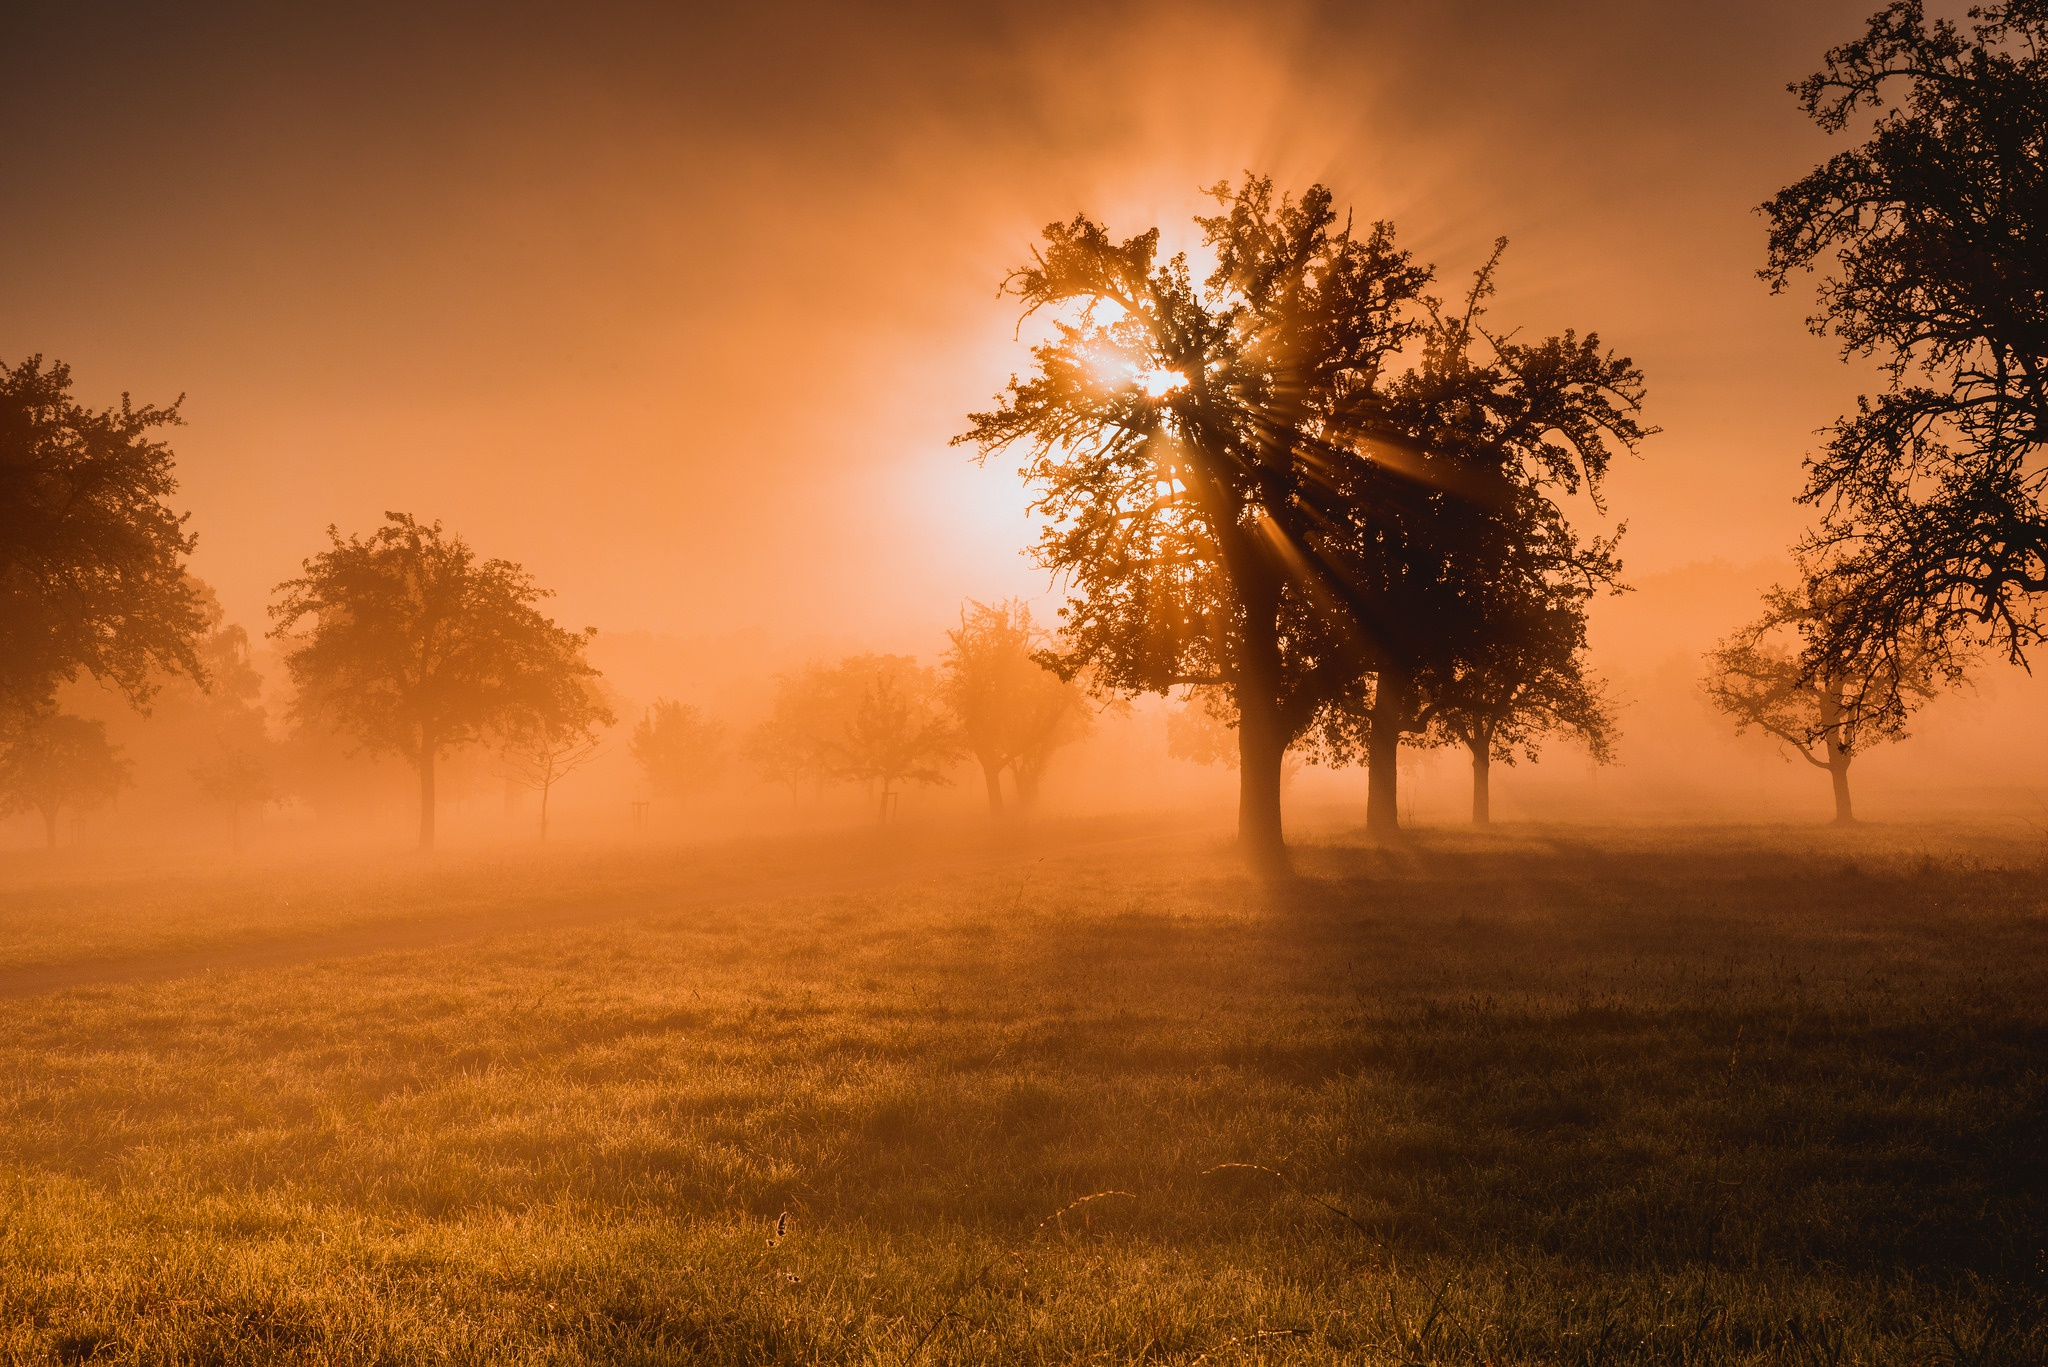 Grass Nature Sunbeam Sunset Tree 2048x1367